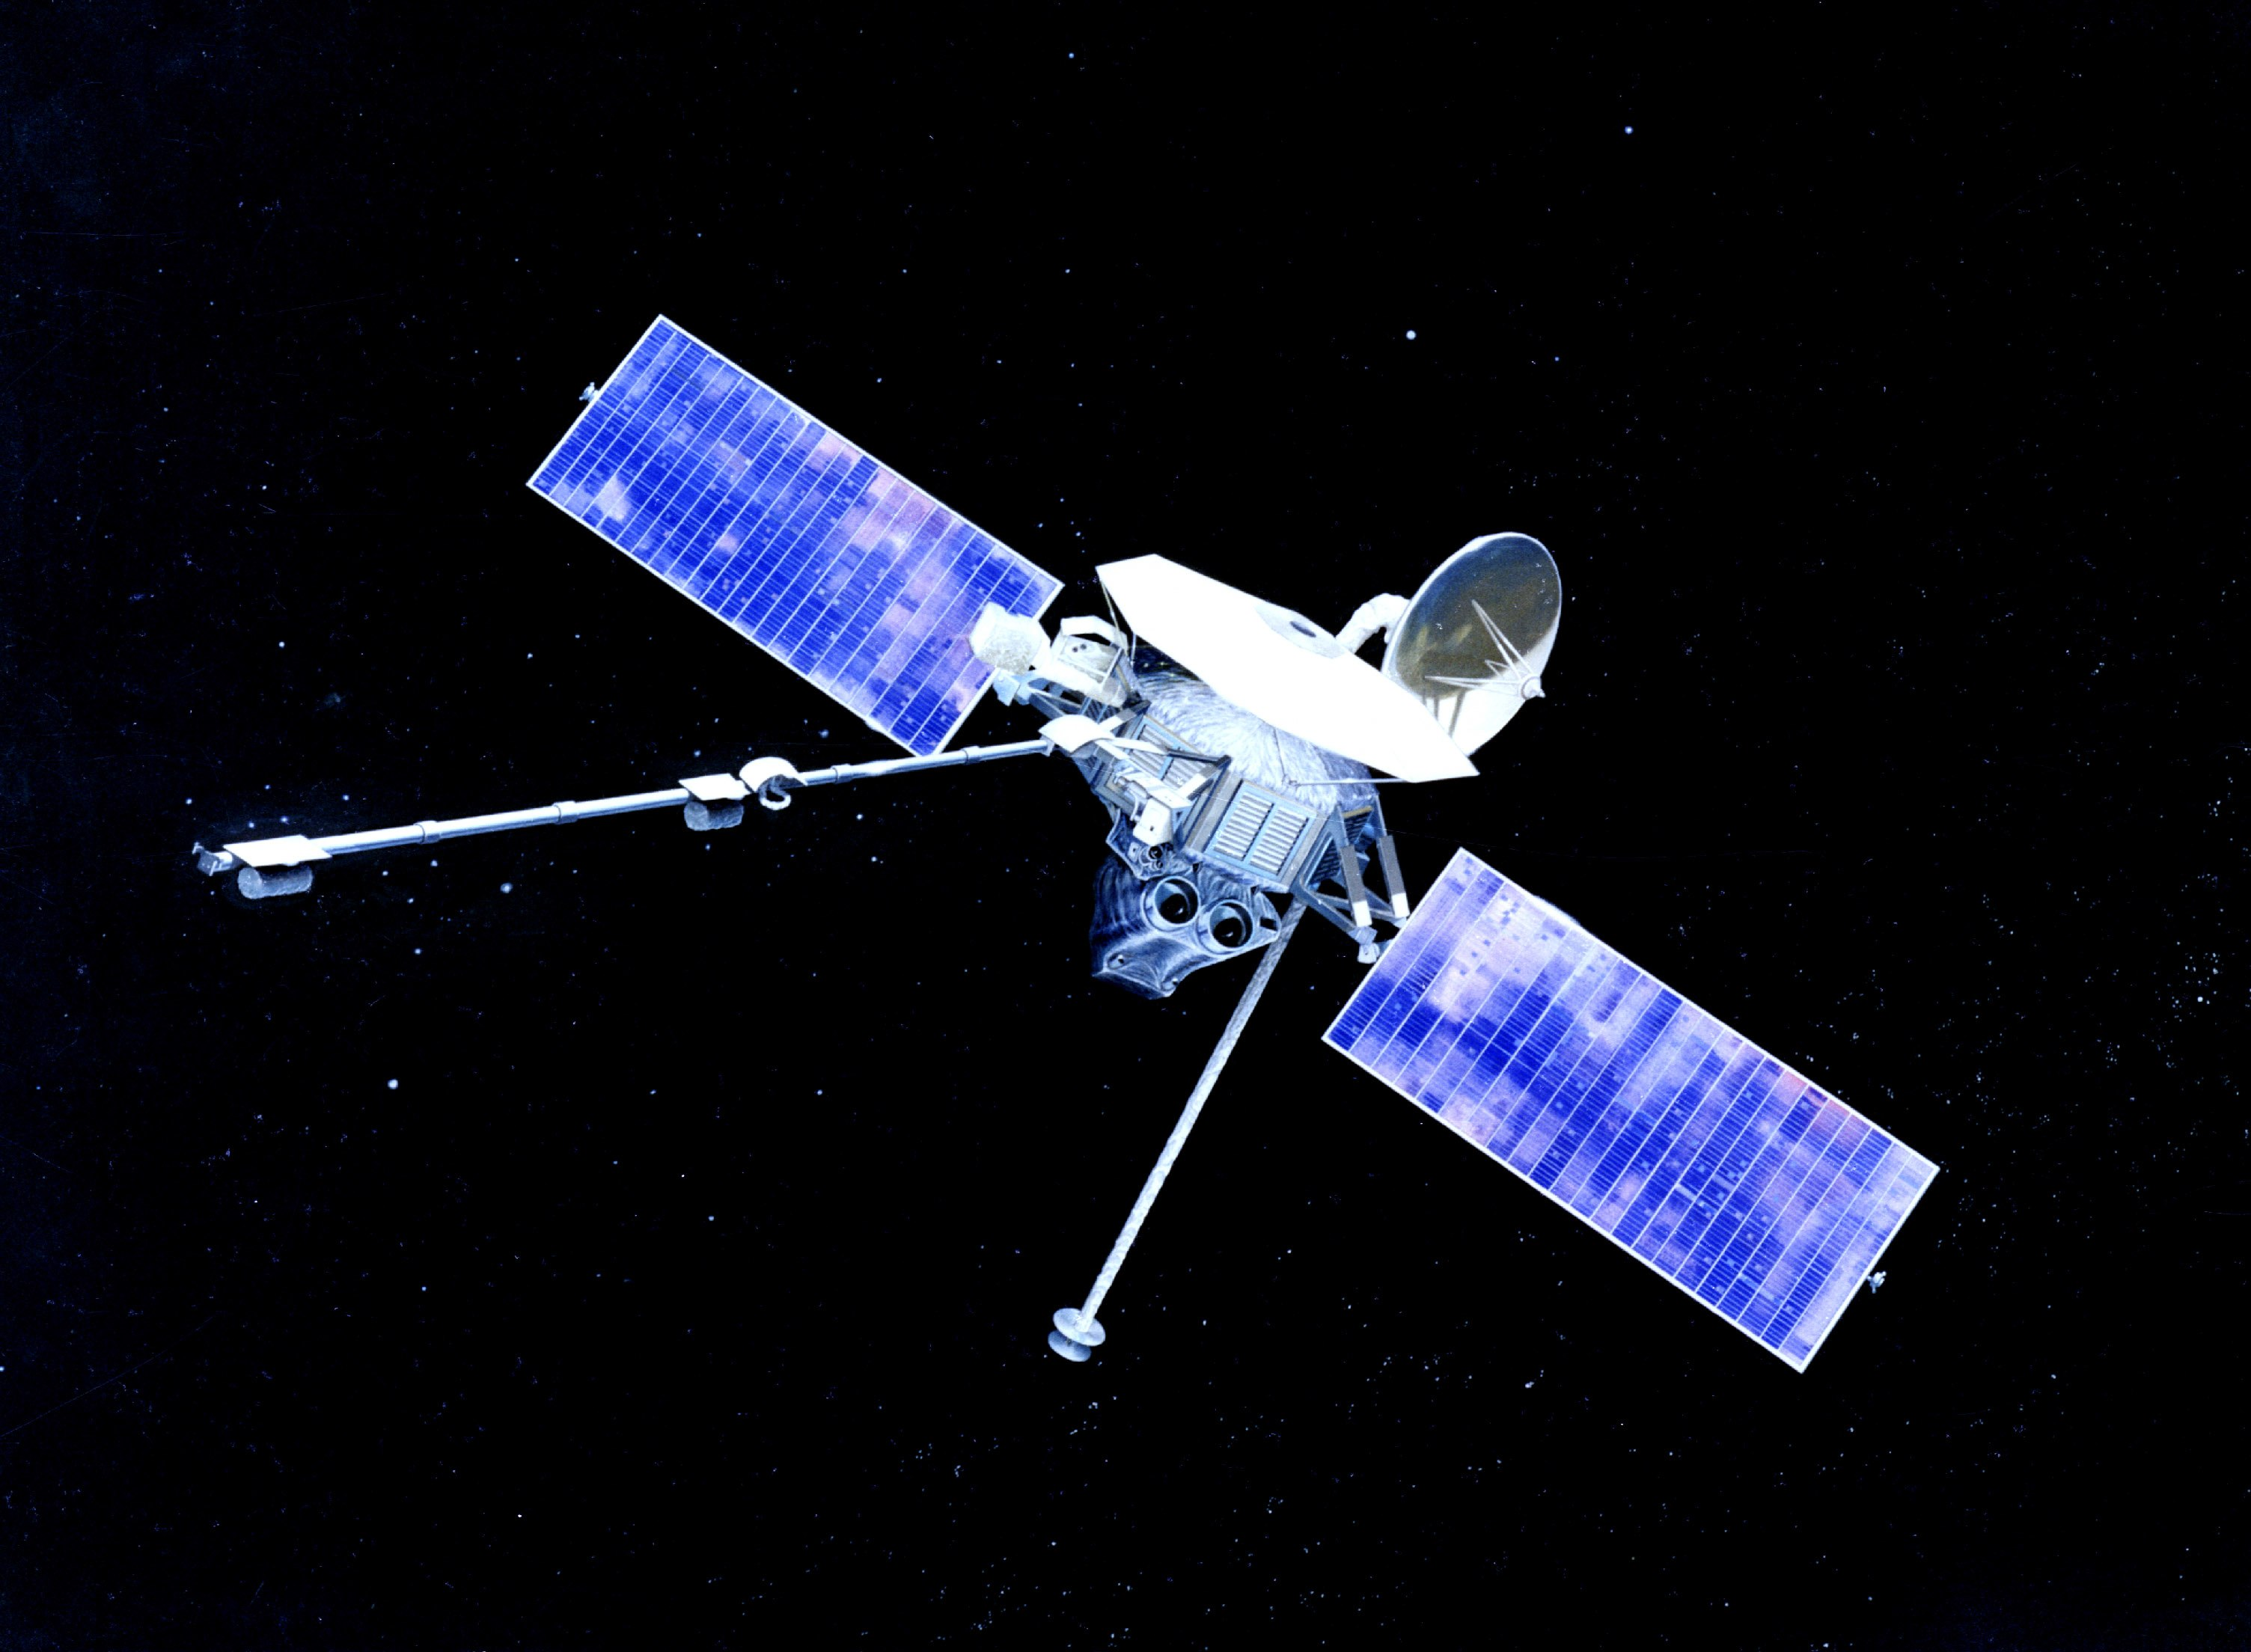 File:Mariner 10.jpg - Wikipedia